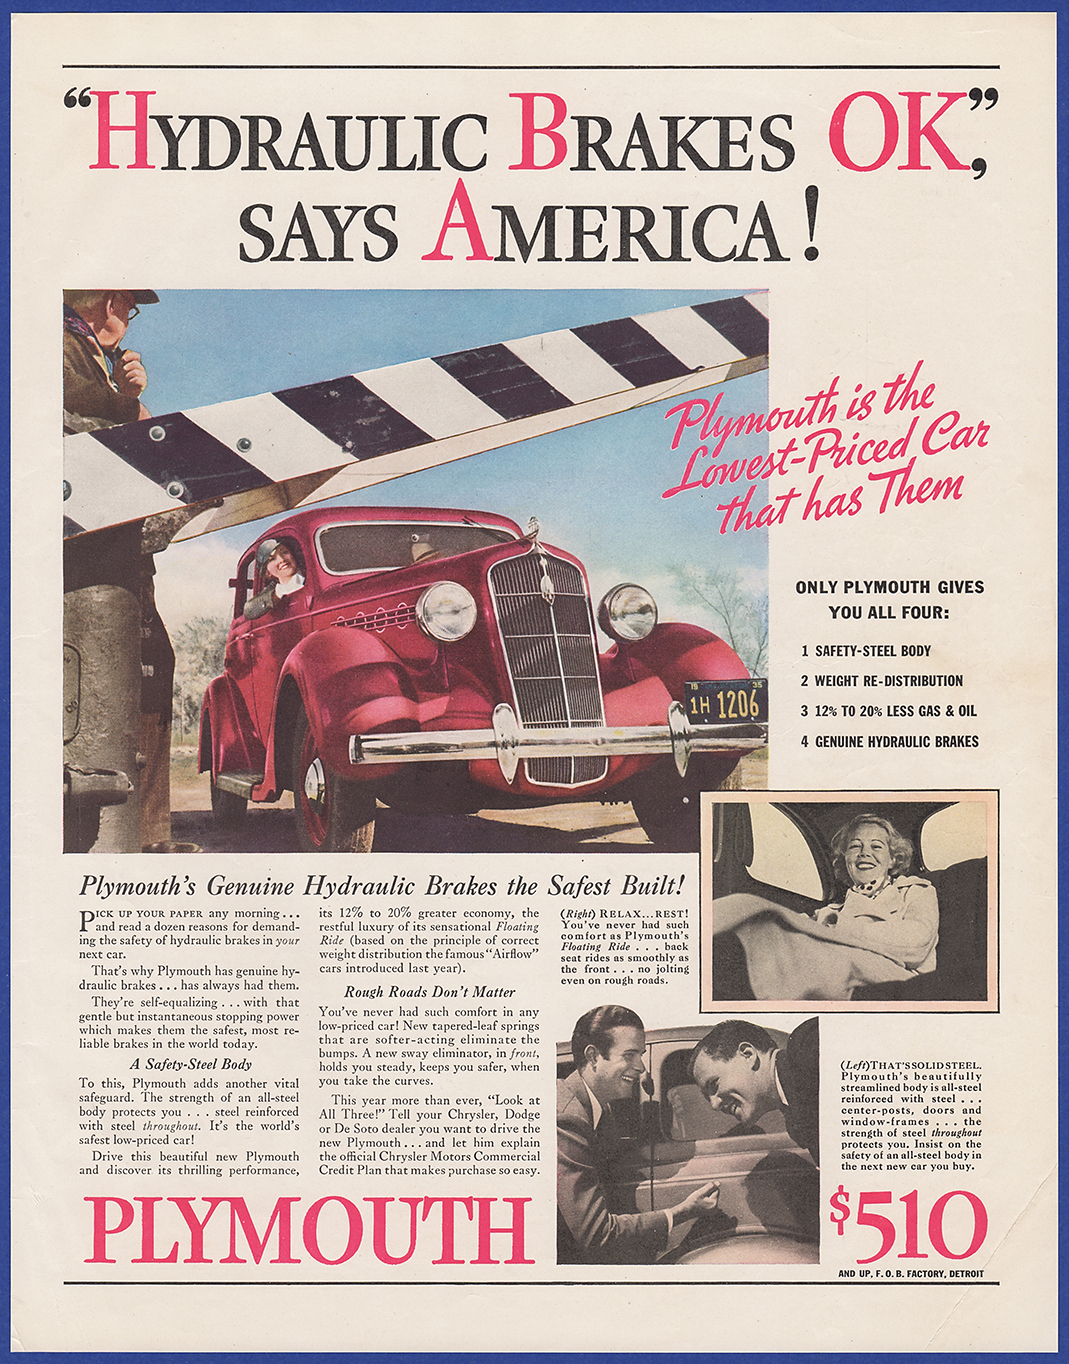 Vintage 1935 Plymouth Hydraulic Brakes Auto Garage Ephemera Print Ad 1960 Fury Station Wagon I Combine Shipping At No Extra Charge Add 3 Or More Ads To The Cart And Receive Free Checkout